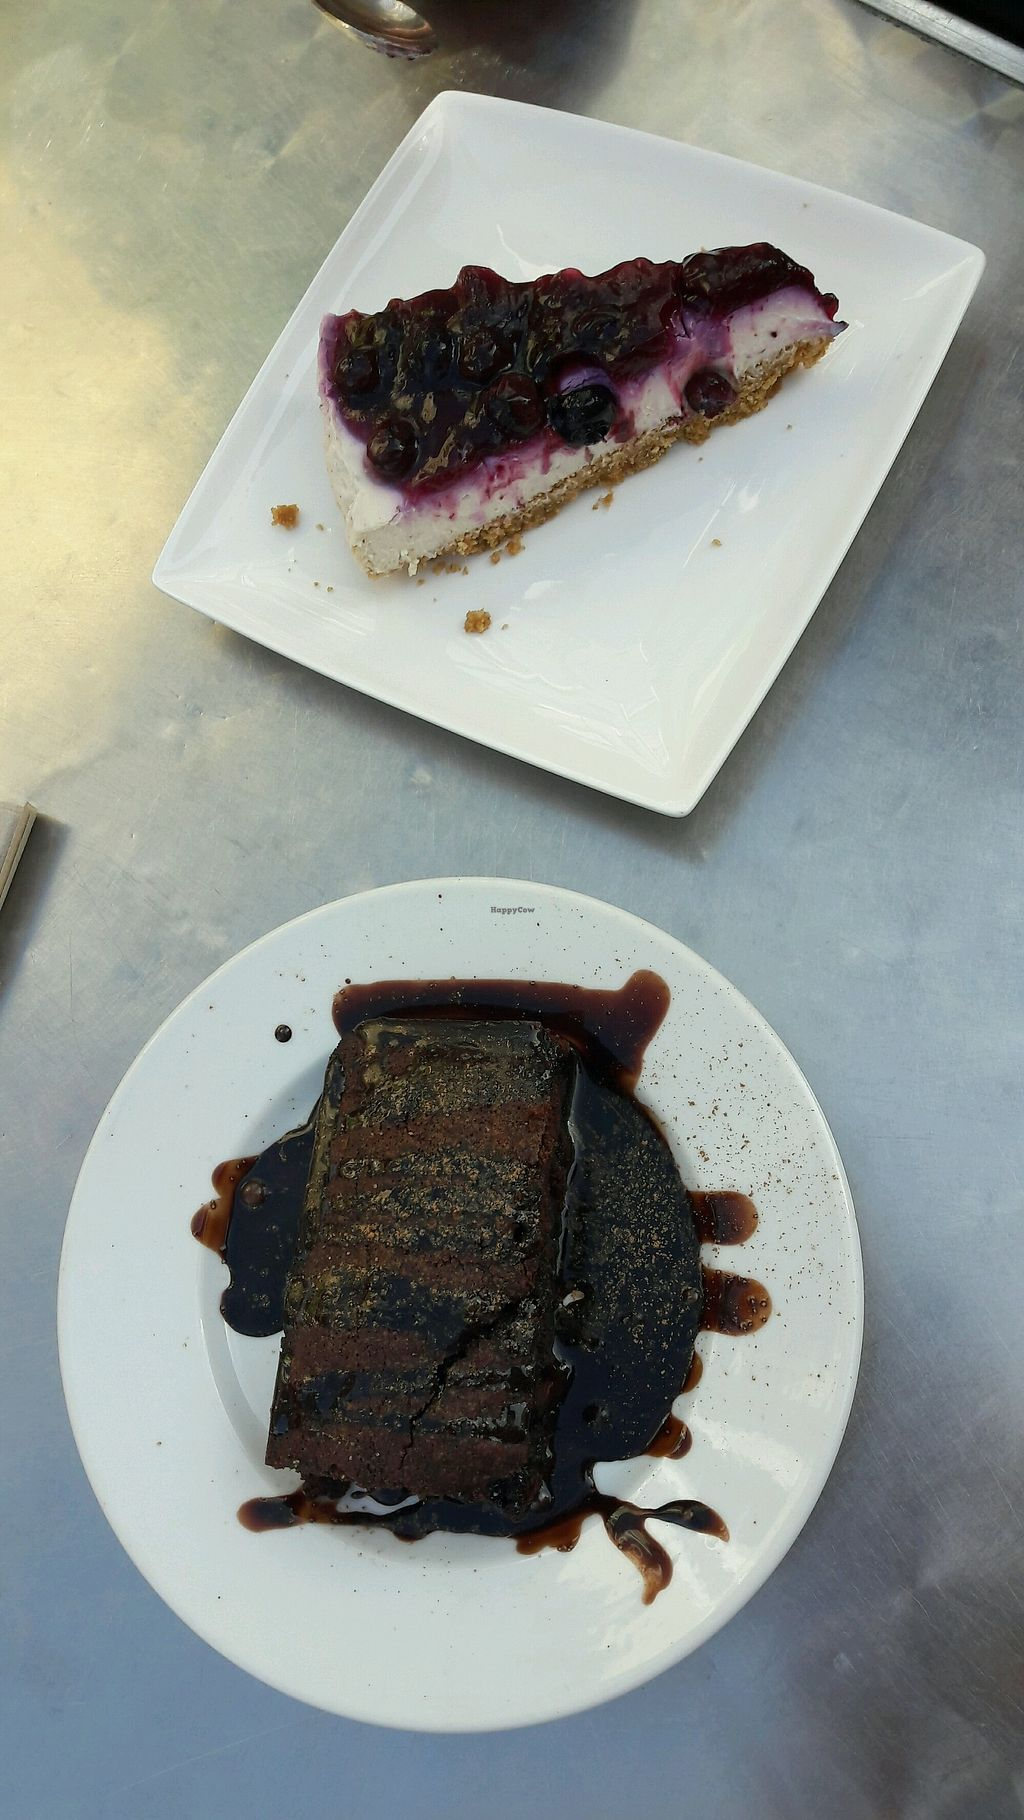 "Photo of Loving Hut - North Laine  by <a href=""/members/profile/emroisen"">emroisen</a> <br/>chocolate brownie and blueberry cheesecake <br/> August 27, 2017  - <a href='/contact/abuse/image/57500/297826'>Report</a>"